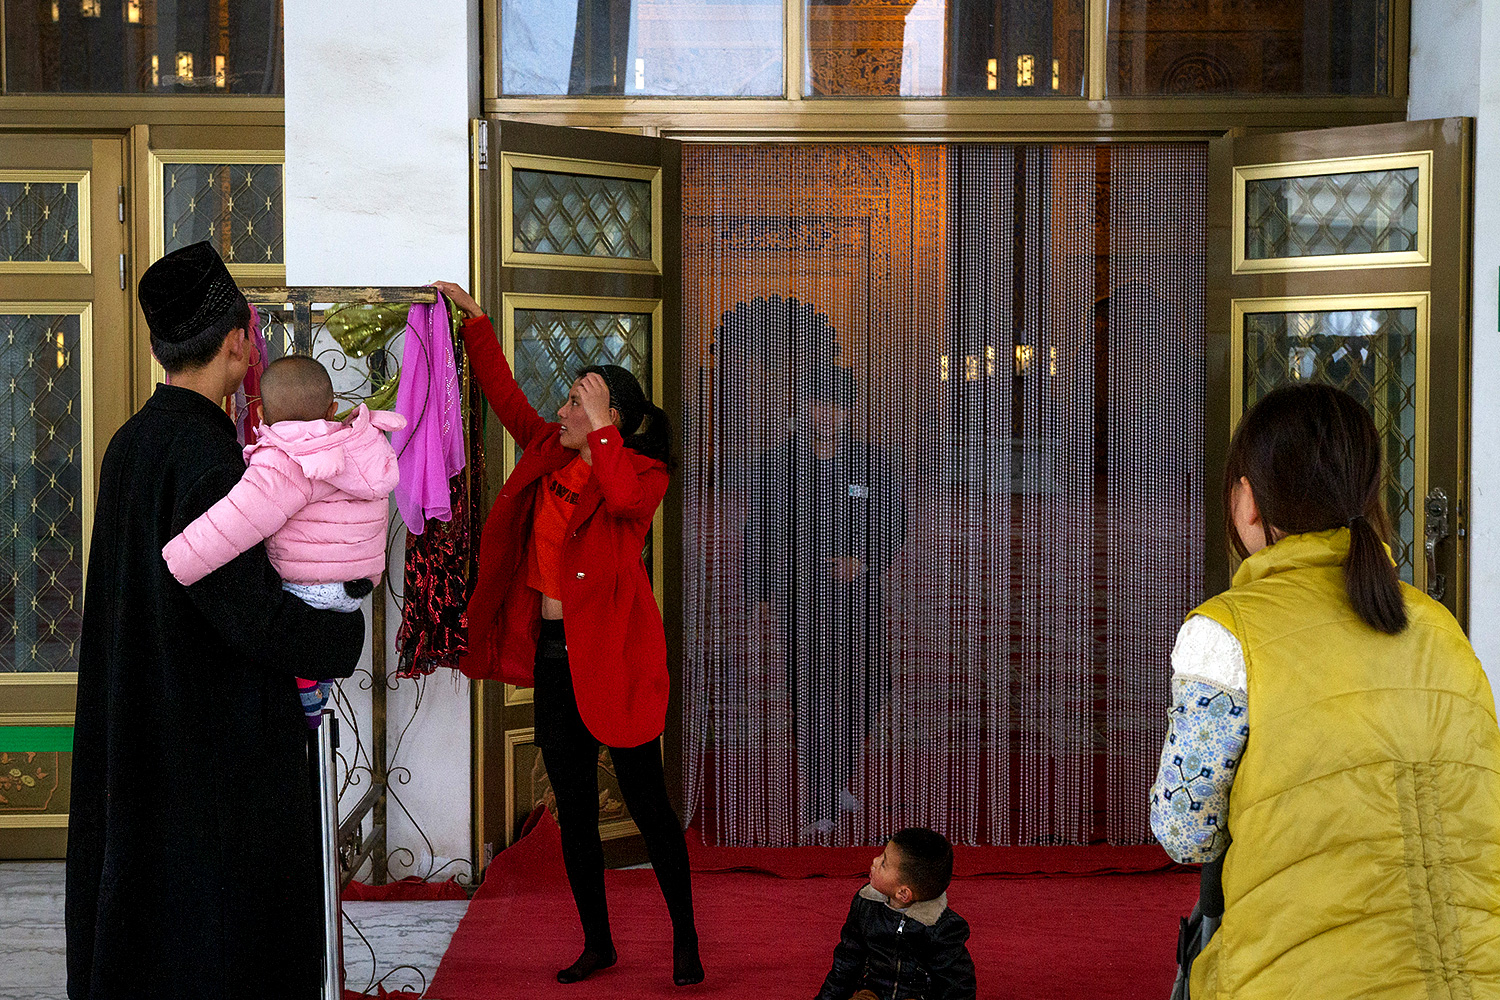 A visitor picks out a headscarf to wear before entering the Golden Palace.